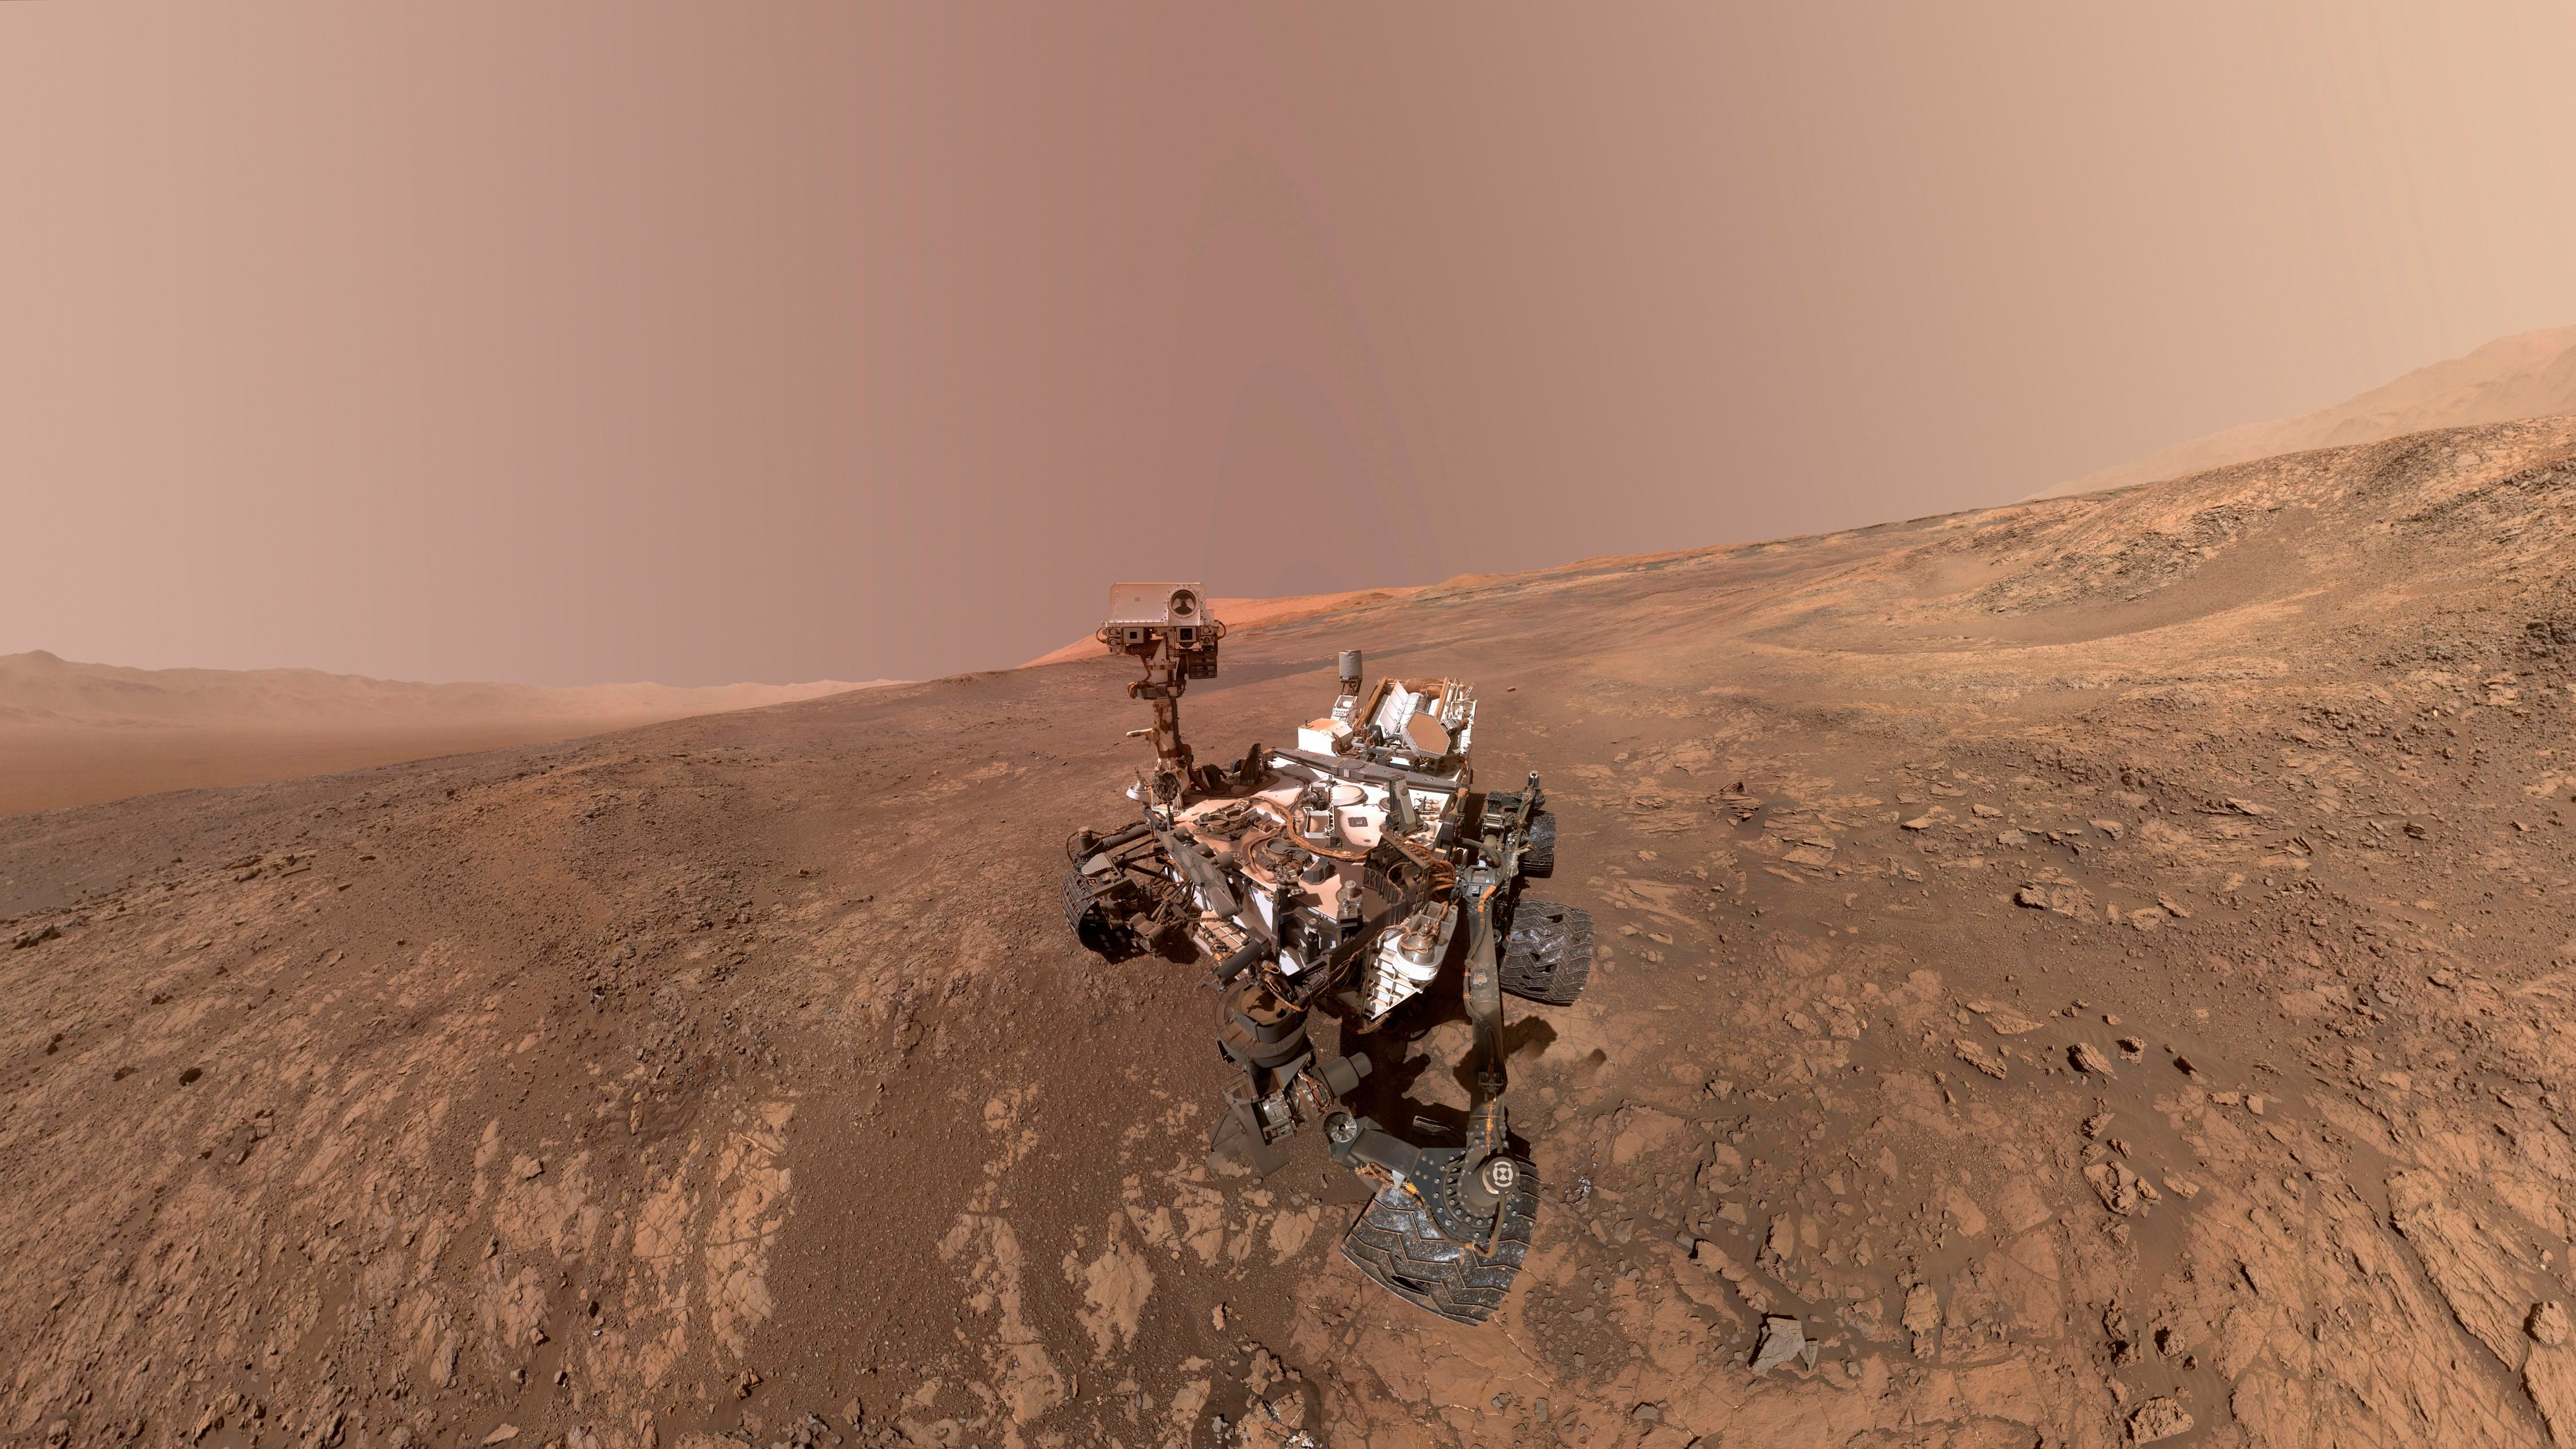 This composite image made from a series of Jan. 23, 2018 photos shows a self-portrait of NASA's Curiosity Mars rover on Vera Rubin Ridge. The rover's arm which held the camera was positioned out of each of the dozens of shots which make up the mosaic.